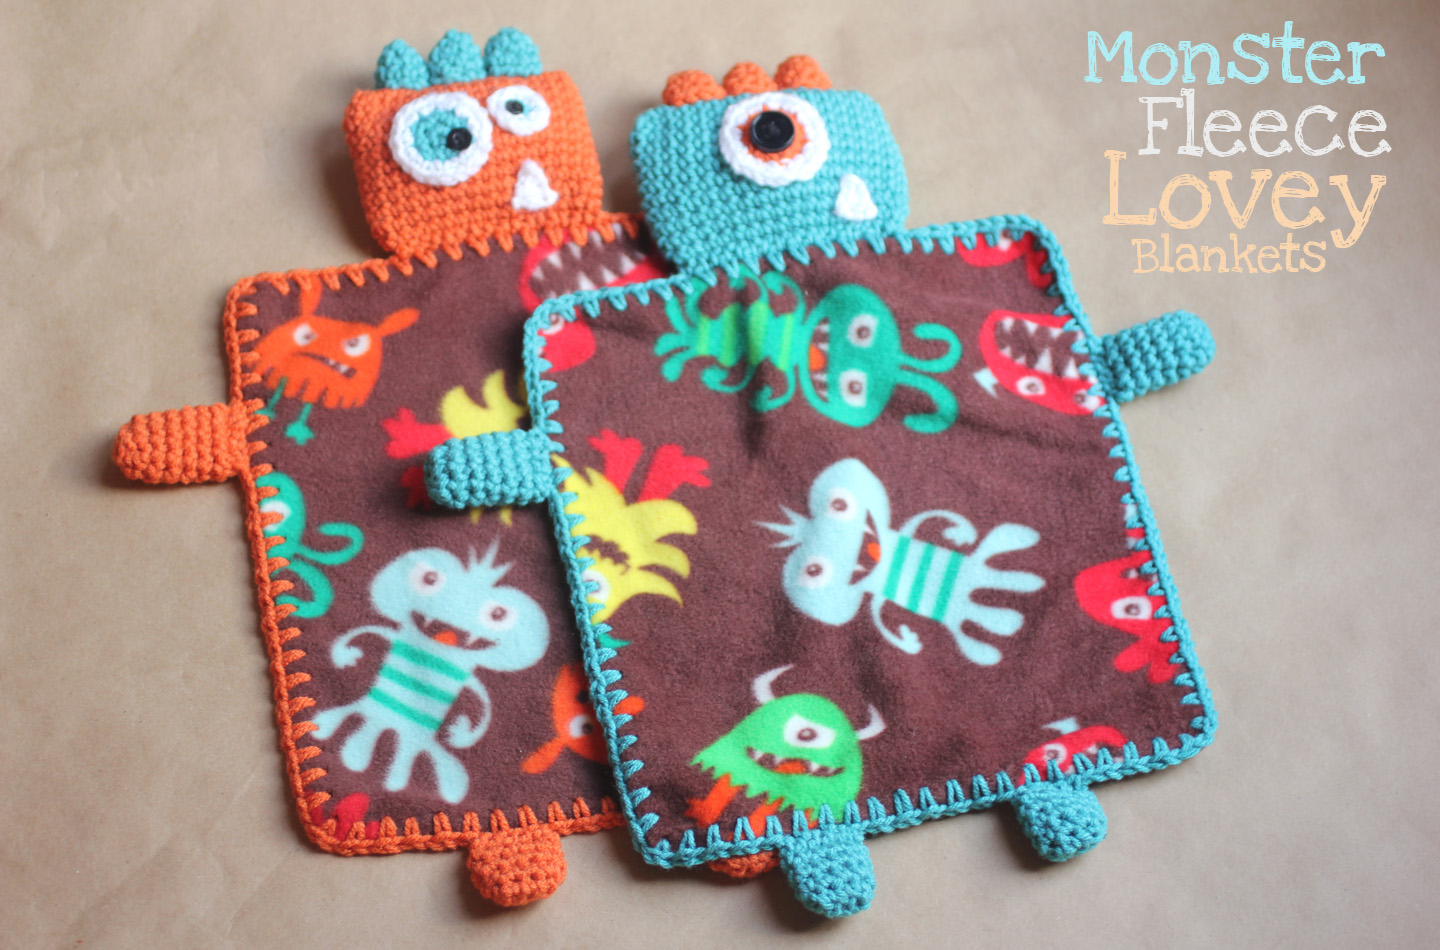 Free Crochet Lovey Blanket Patterns ...